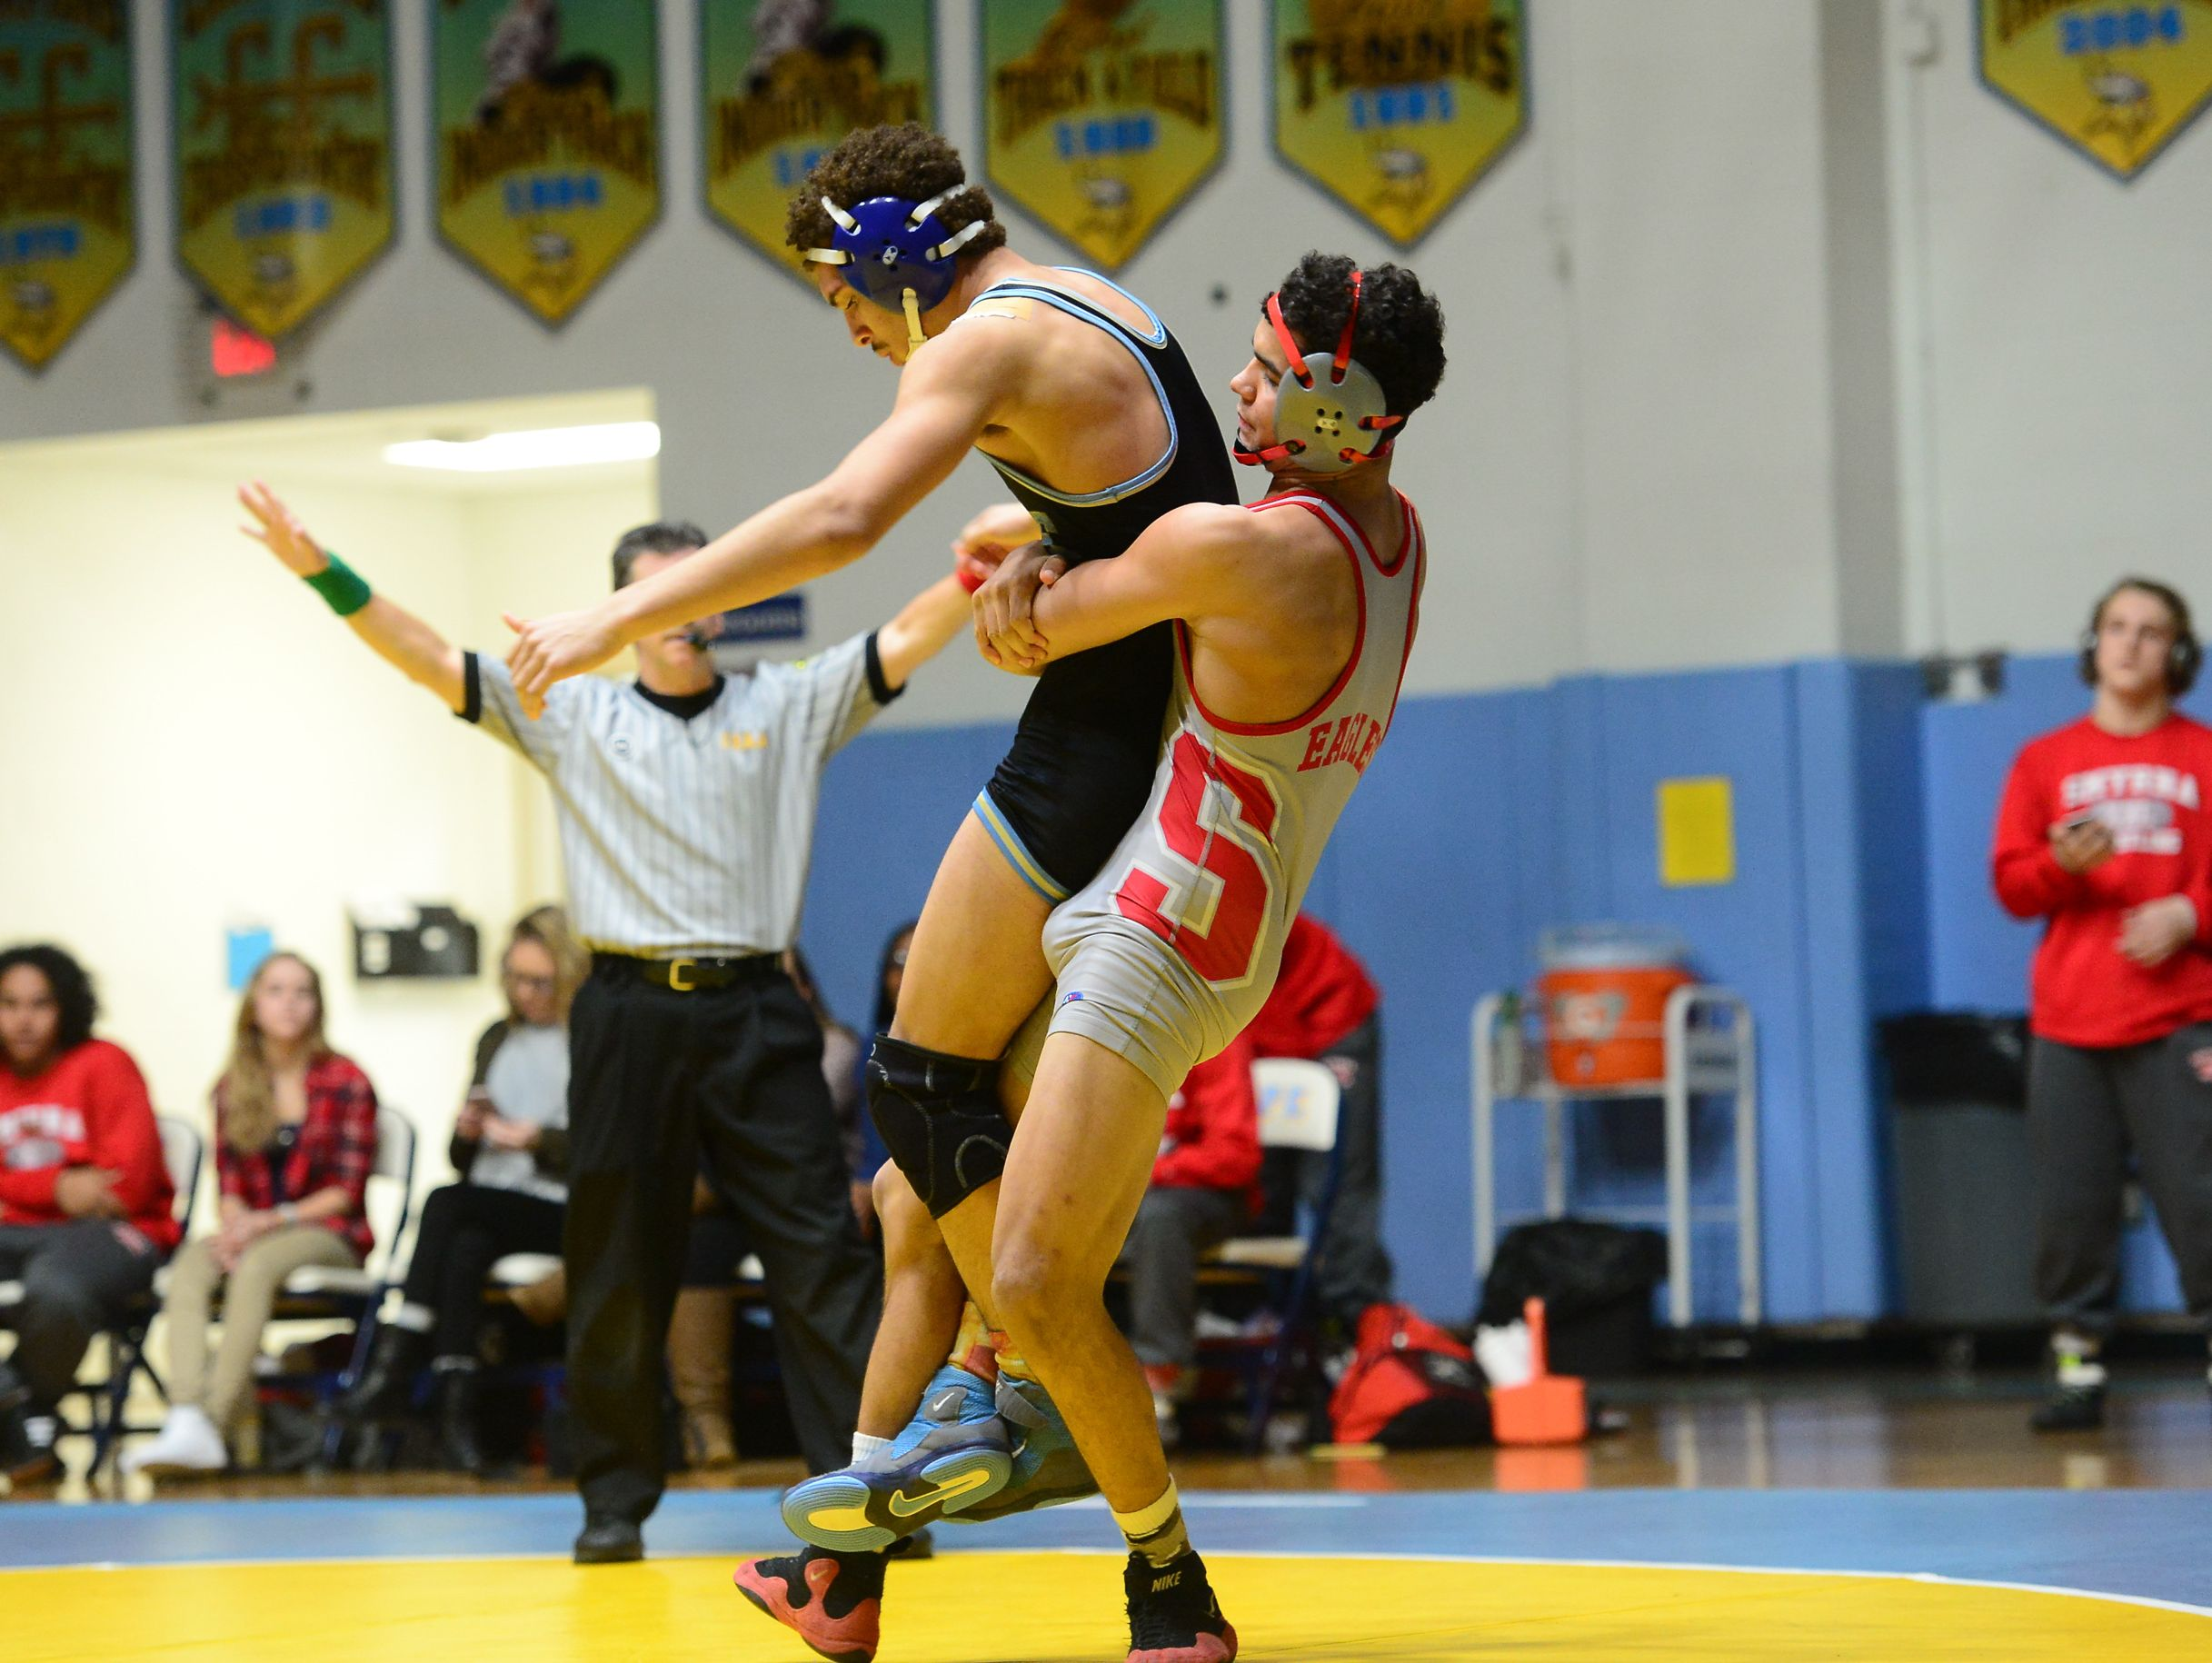 Cape's Dante Jacquet matches up against Smyrna's Nate Bryant during the 152lb match up at Cape Henlopen High School on Wednesday, Jan. 18, 2017.